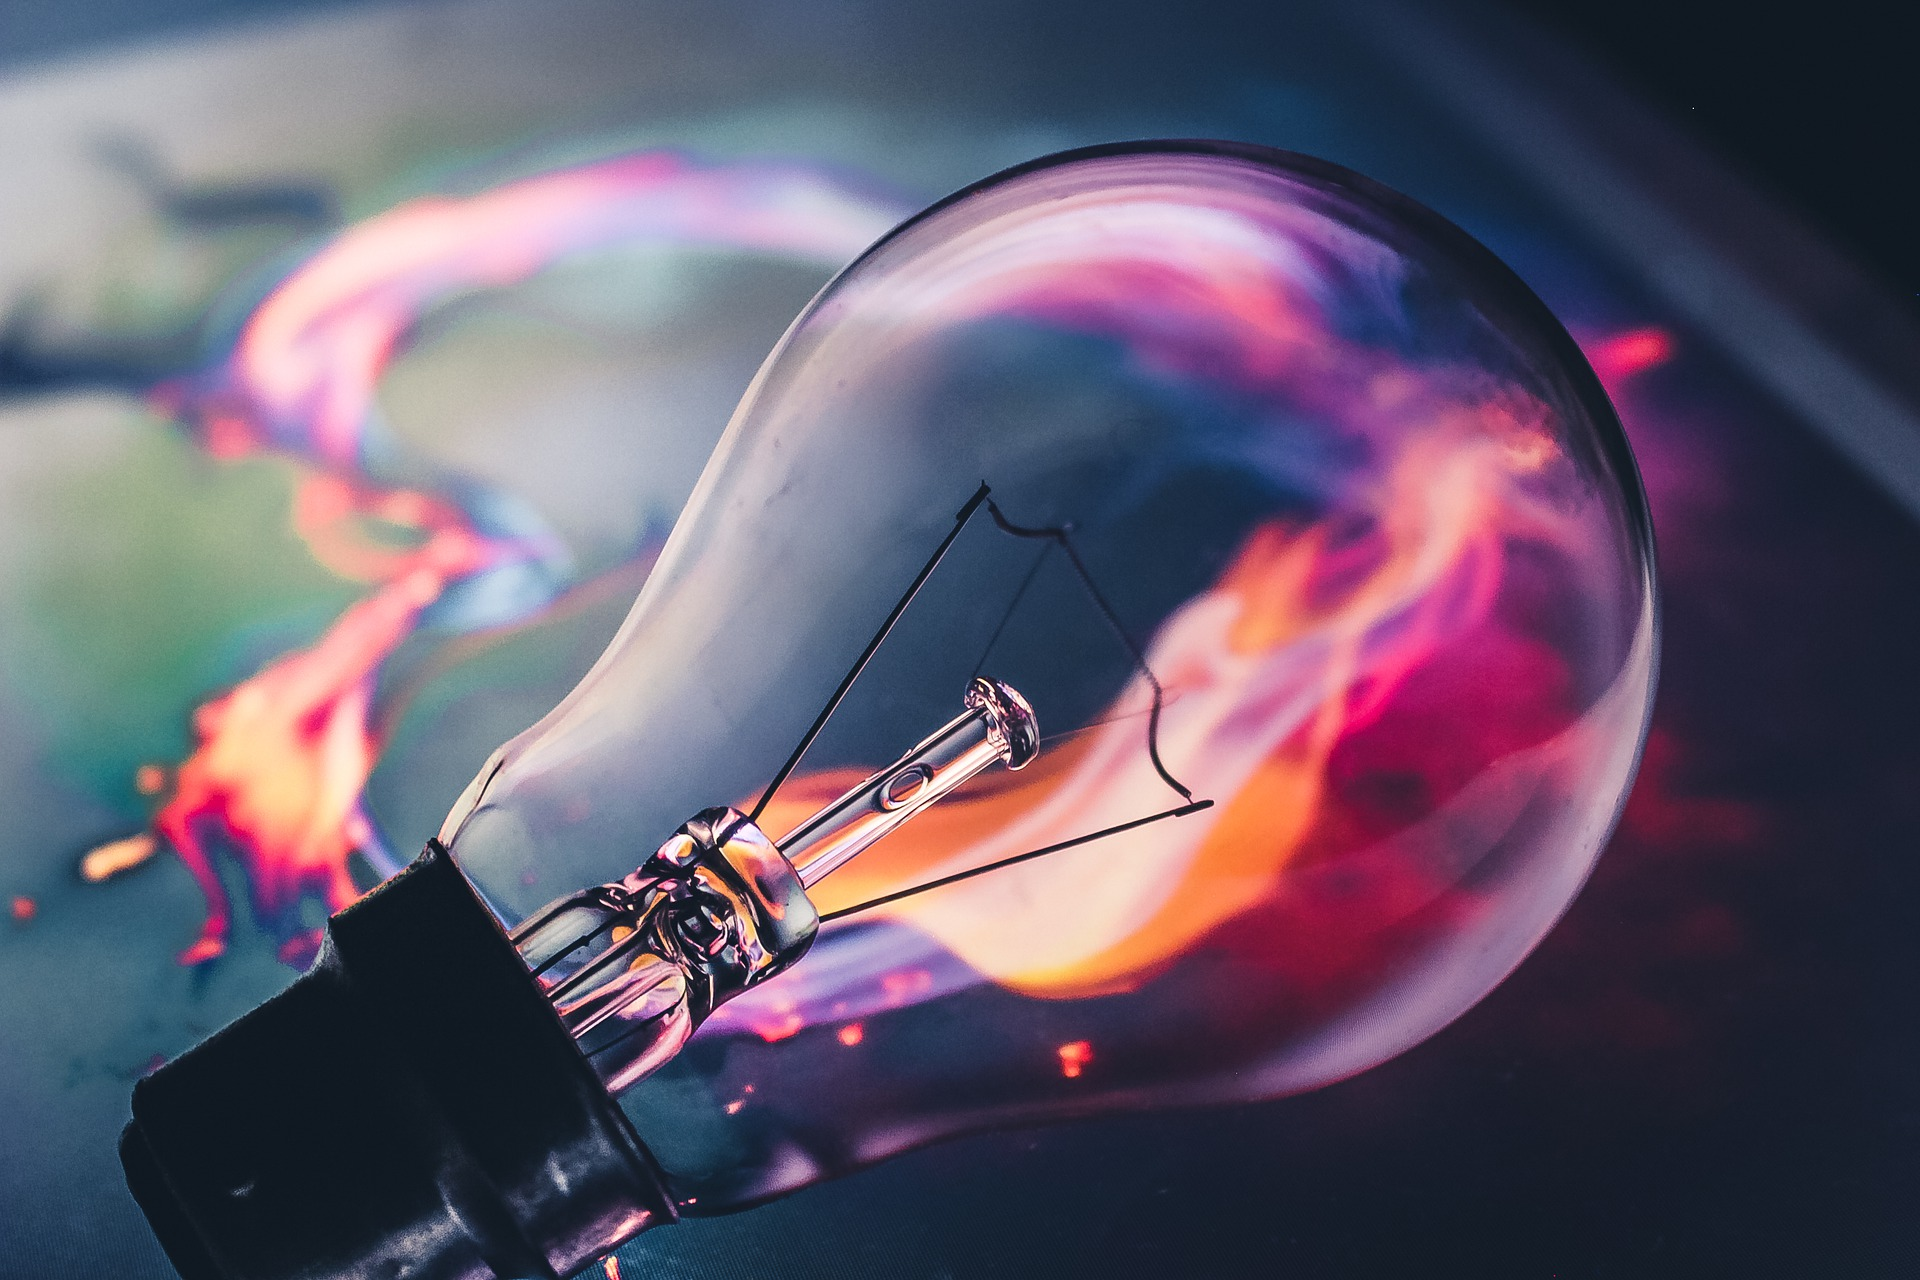 an image of a colorful light bulb